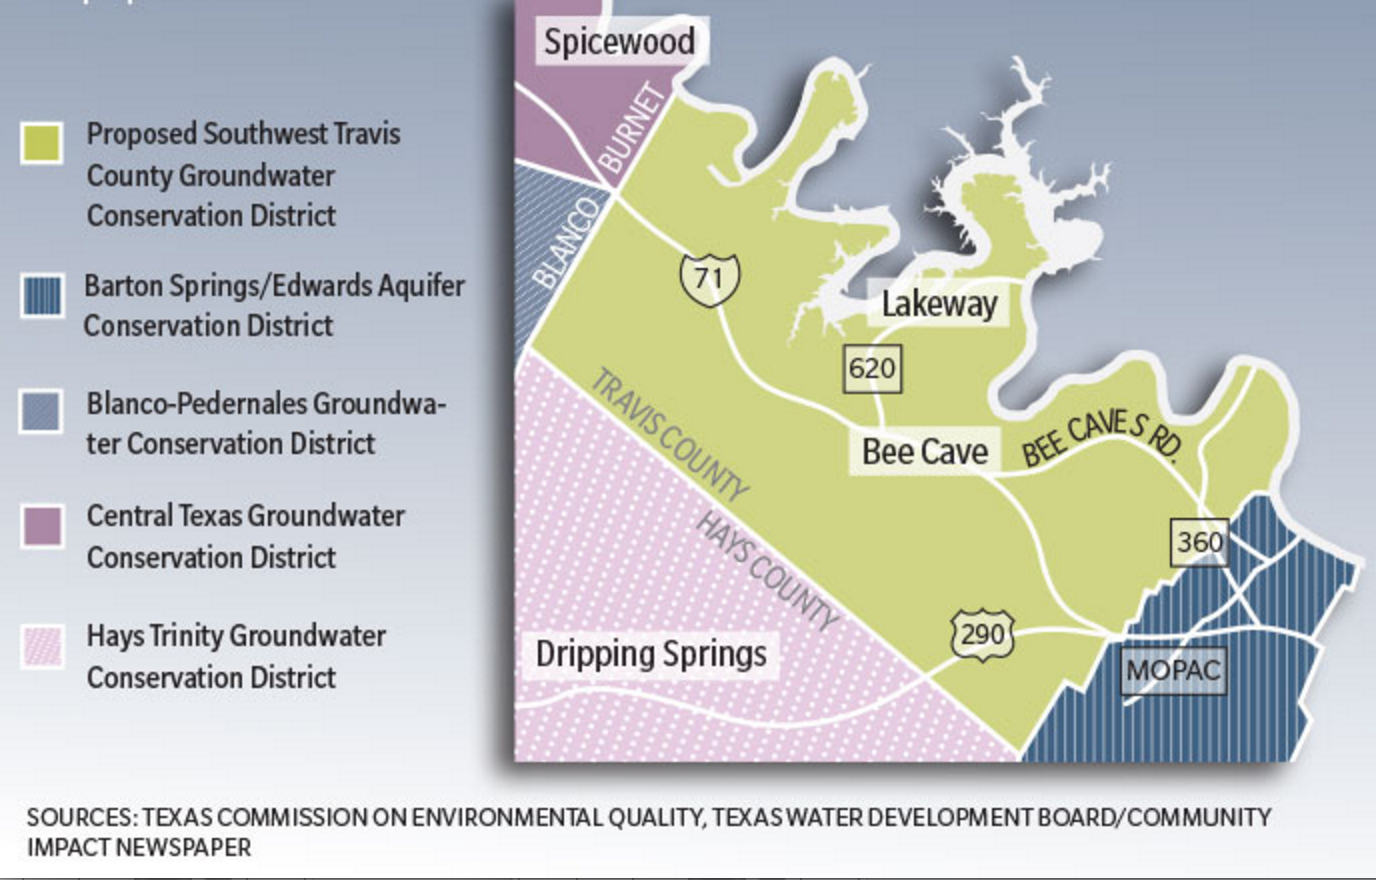 Southwestern Travis County Groundwater Conservation District cancels confirmation and board elections, citing funding concerns